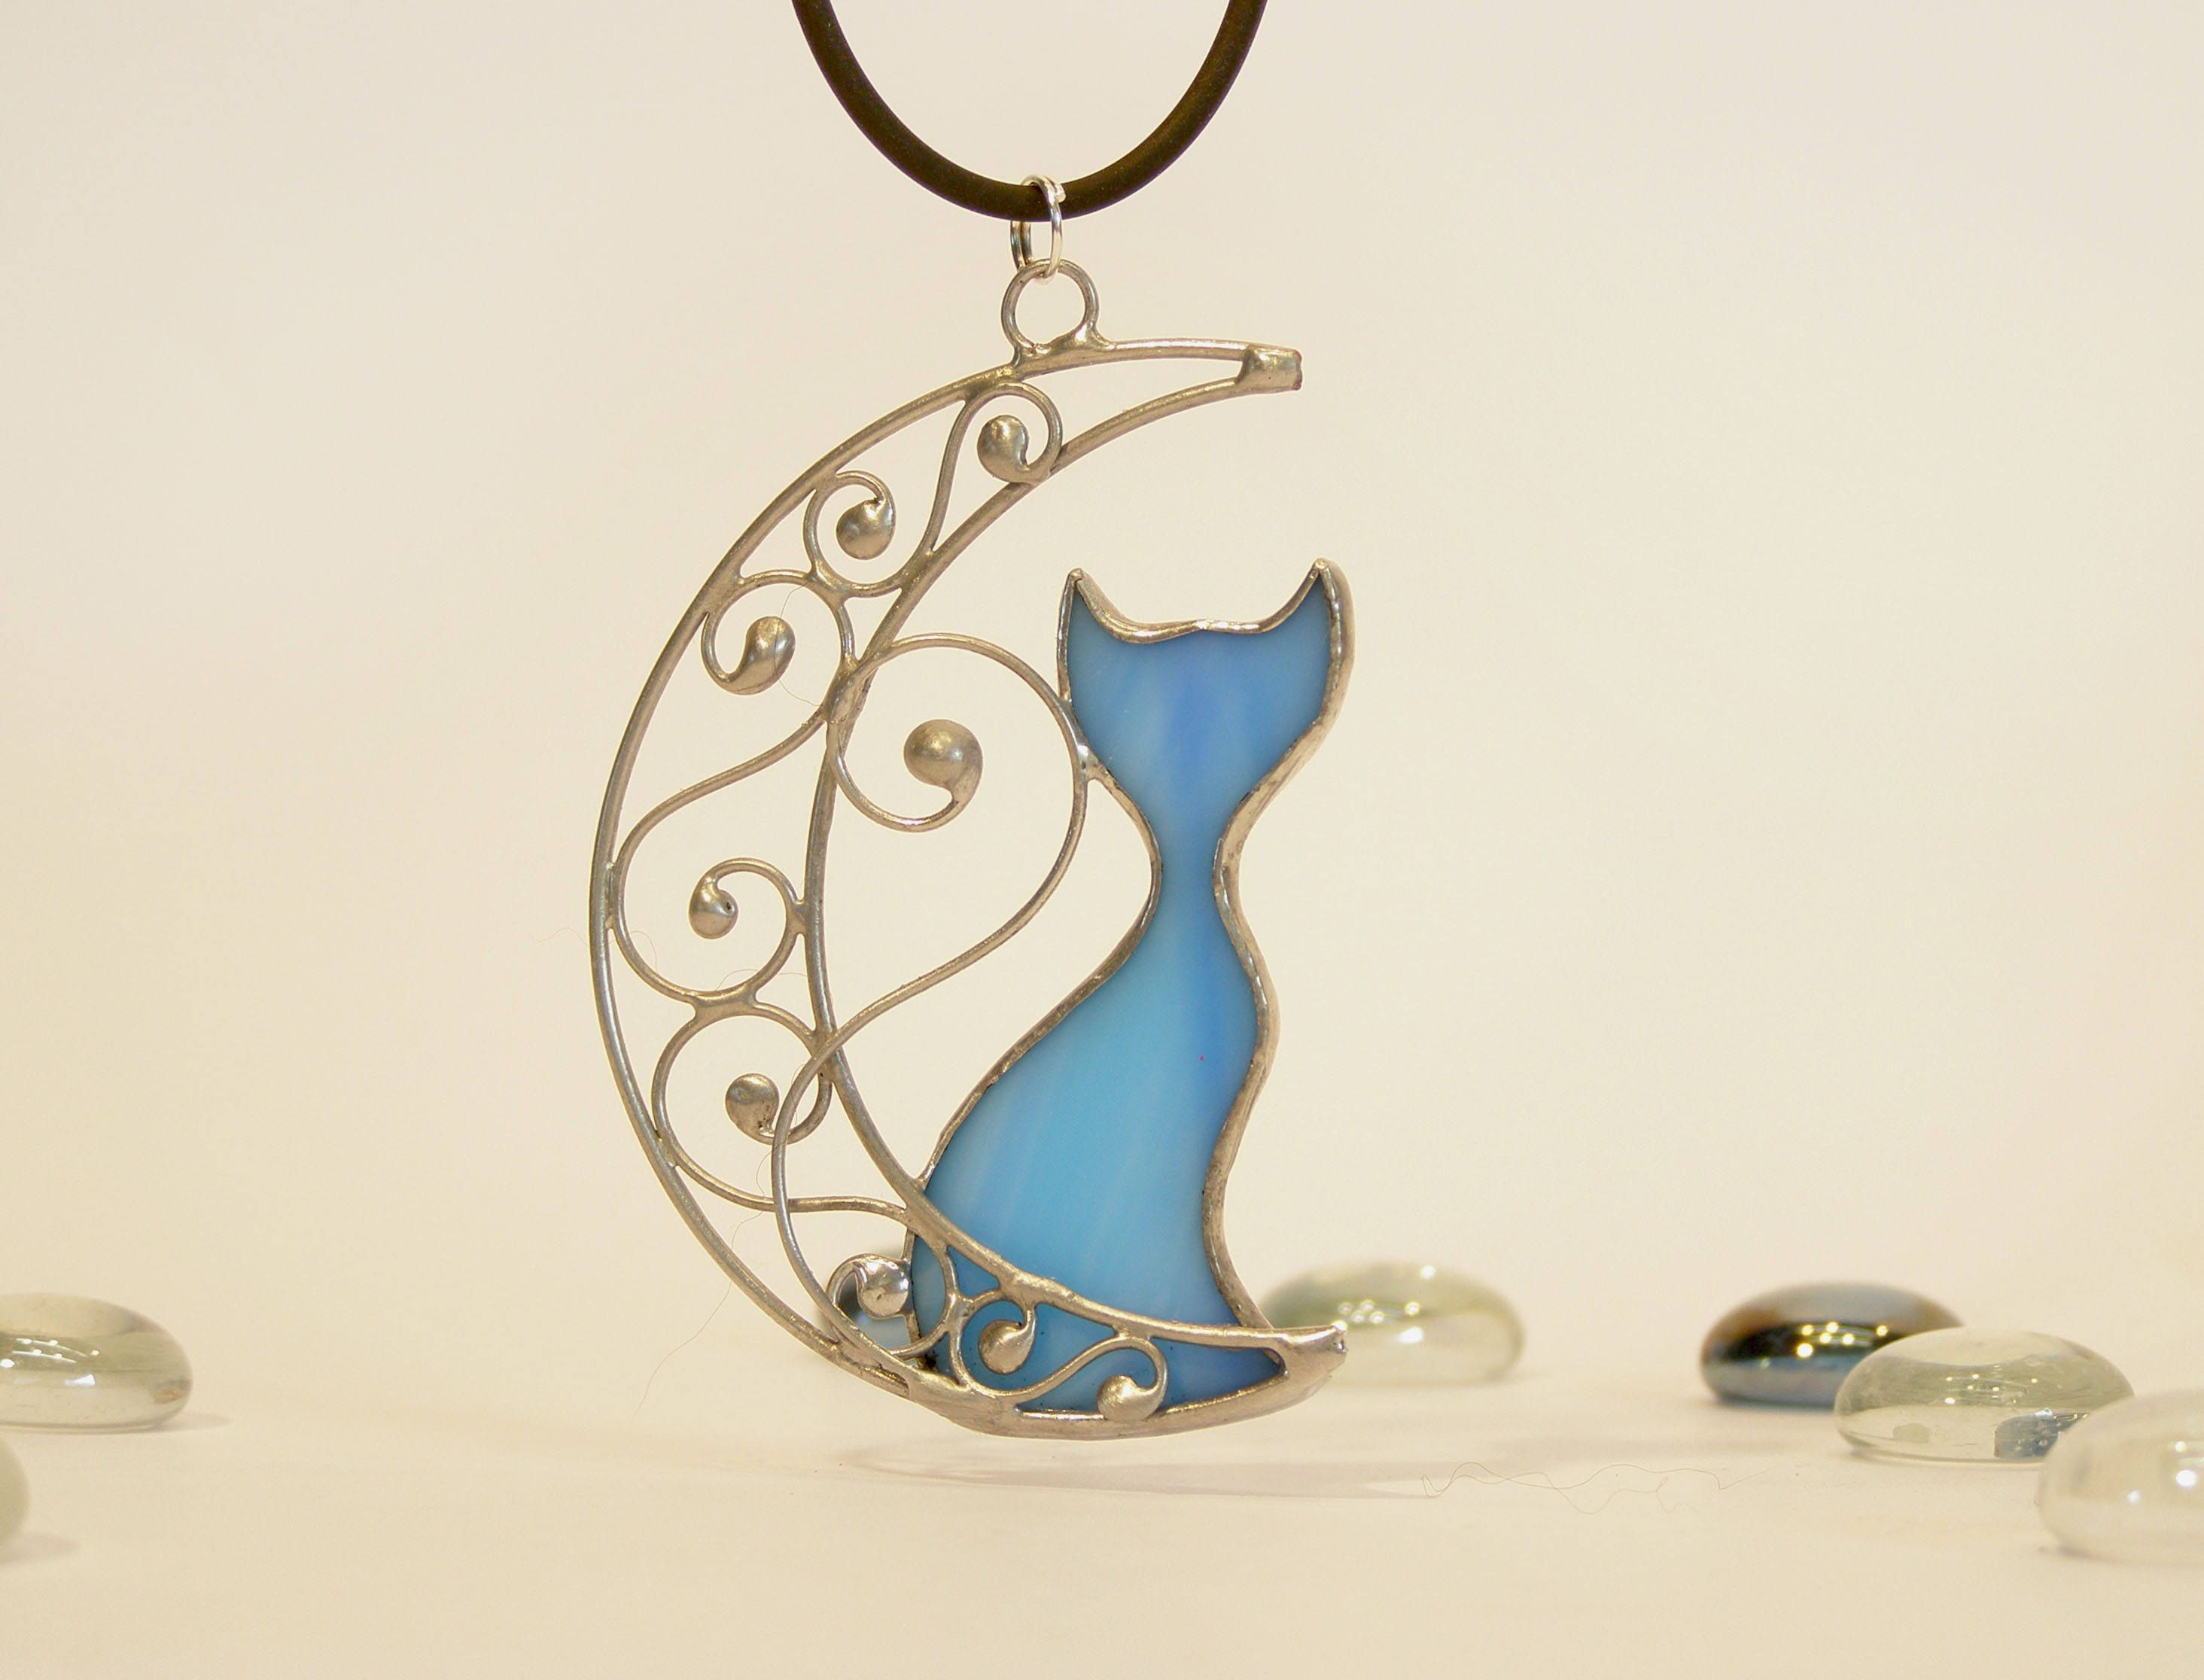 q images jewelry cat qdisplayitemdetail next warhol catmain servlet andy jewellery prev necklace